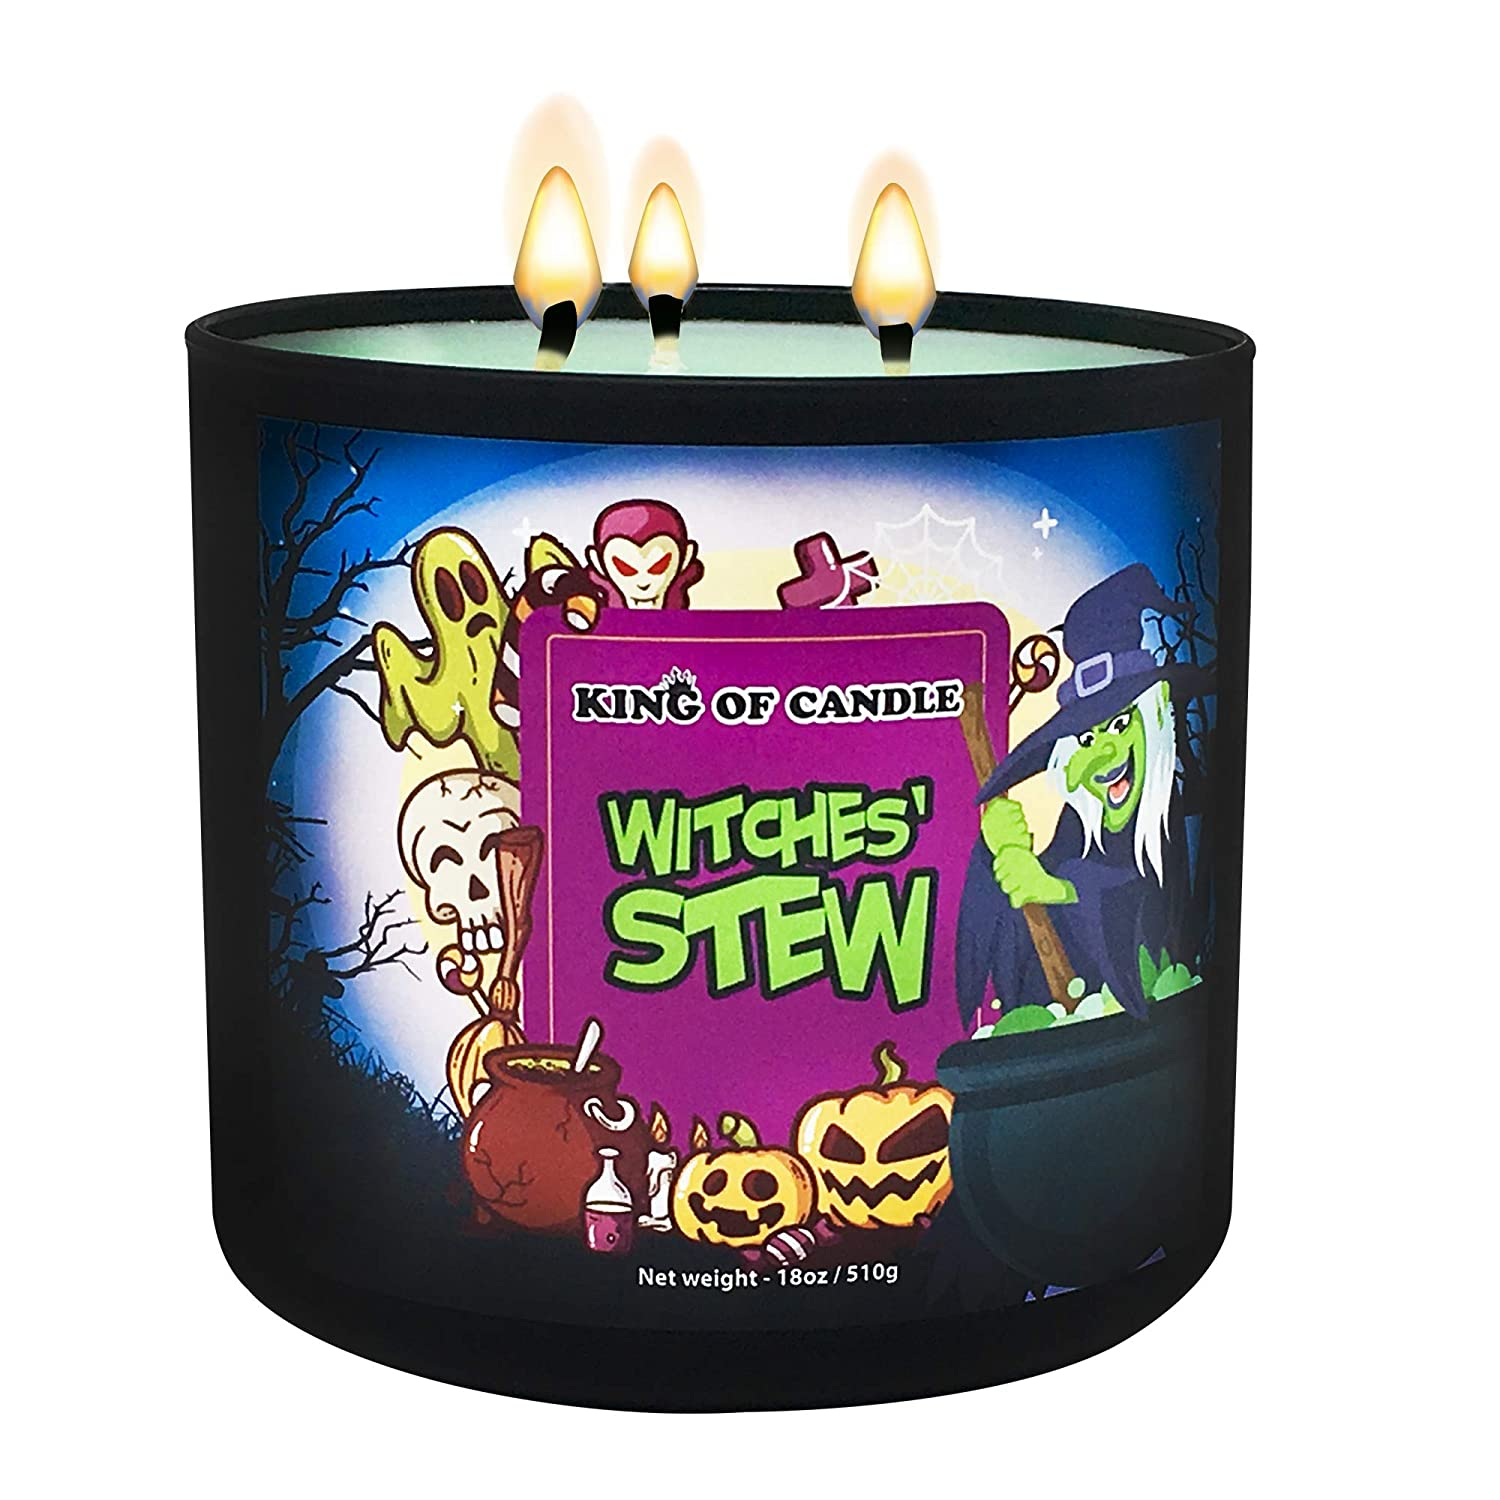 Witches Stew Halloween Candle - Large 3-wick Soy Candle 18 Ounce - Triple Fragrance Oil Highly Scented Fall Candle